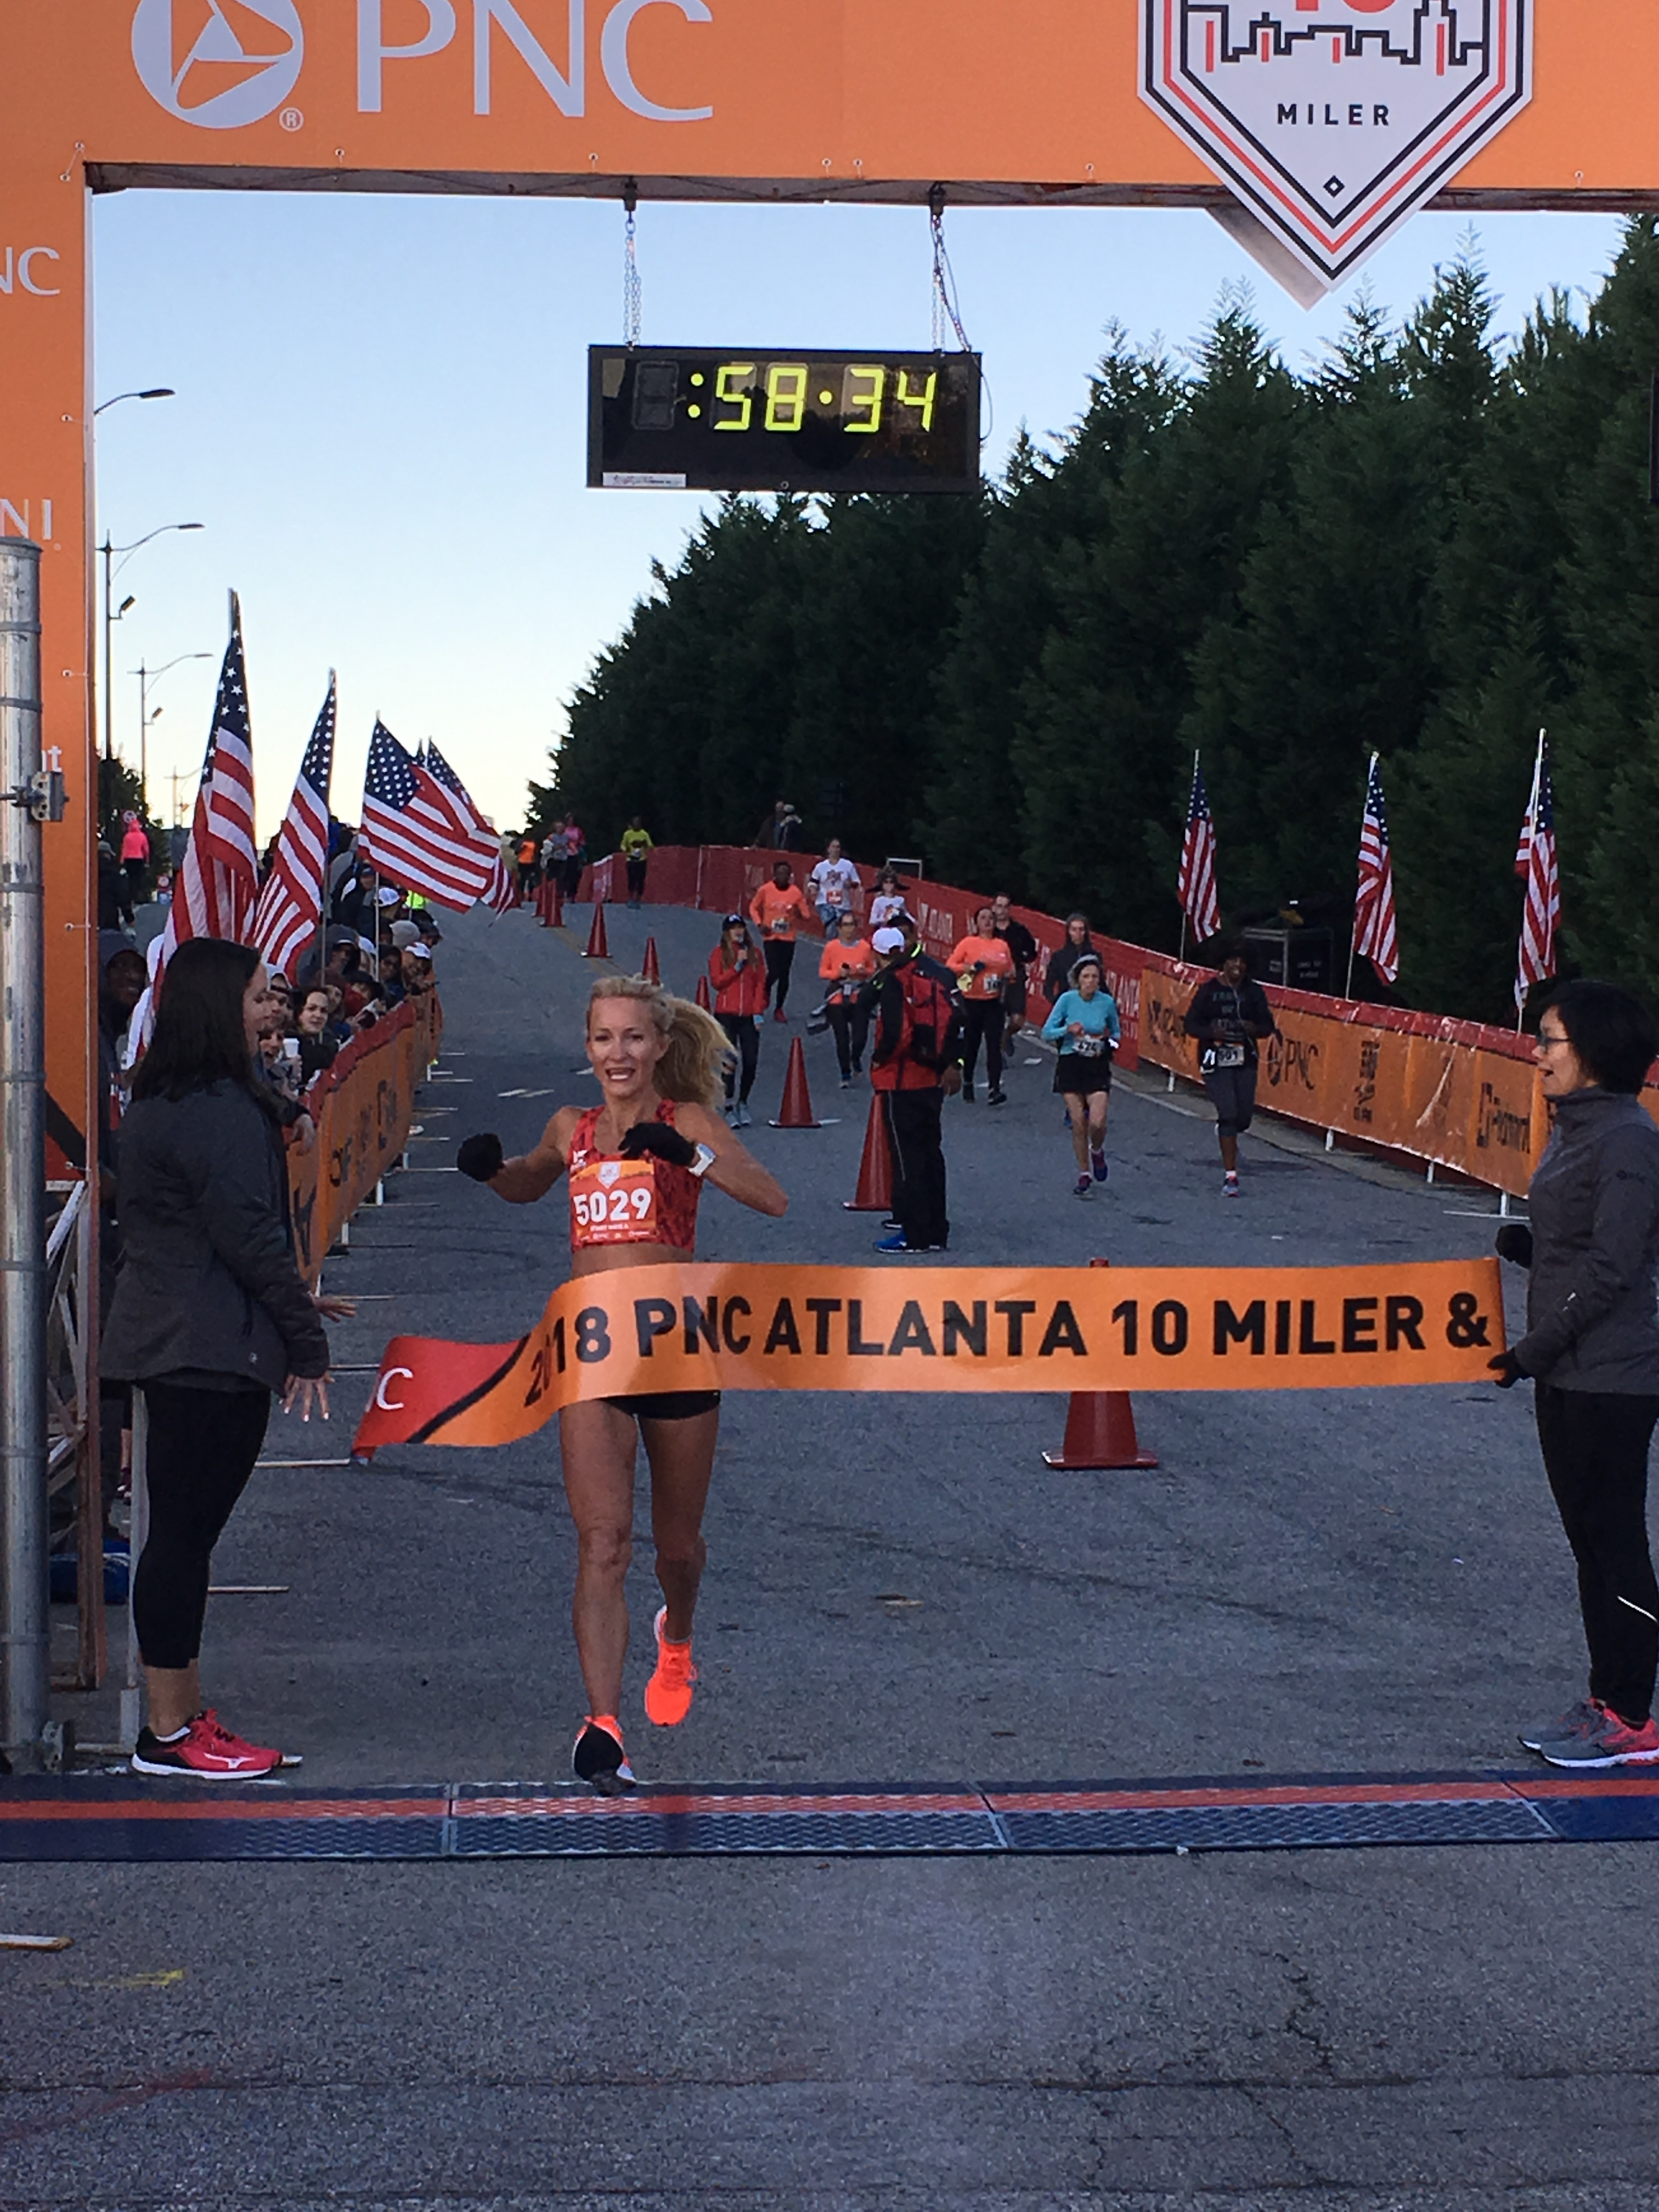 Fall Weather and Fast Finishes at PNC Atlanta 10 Miler & 5K